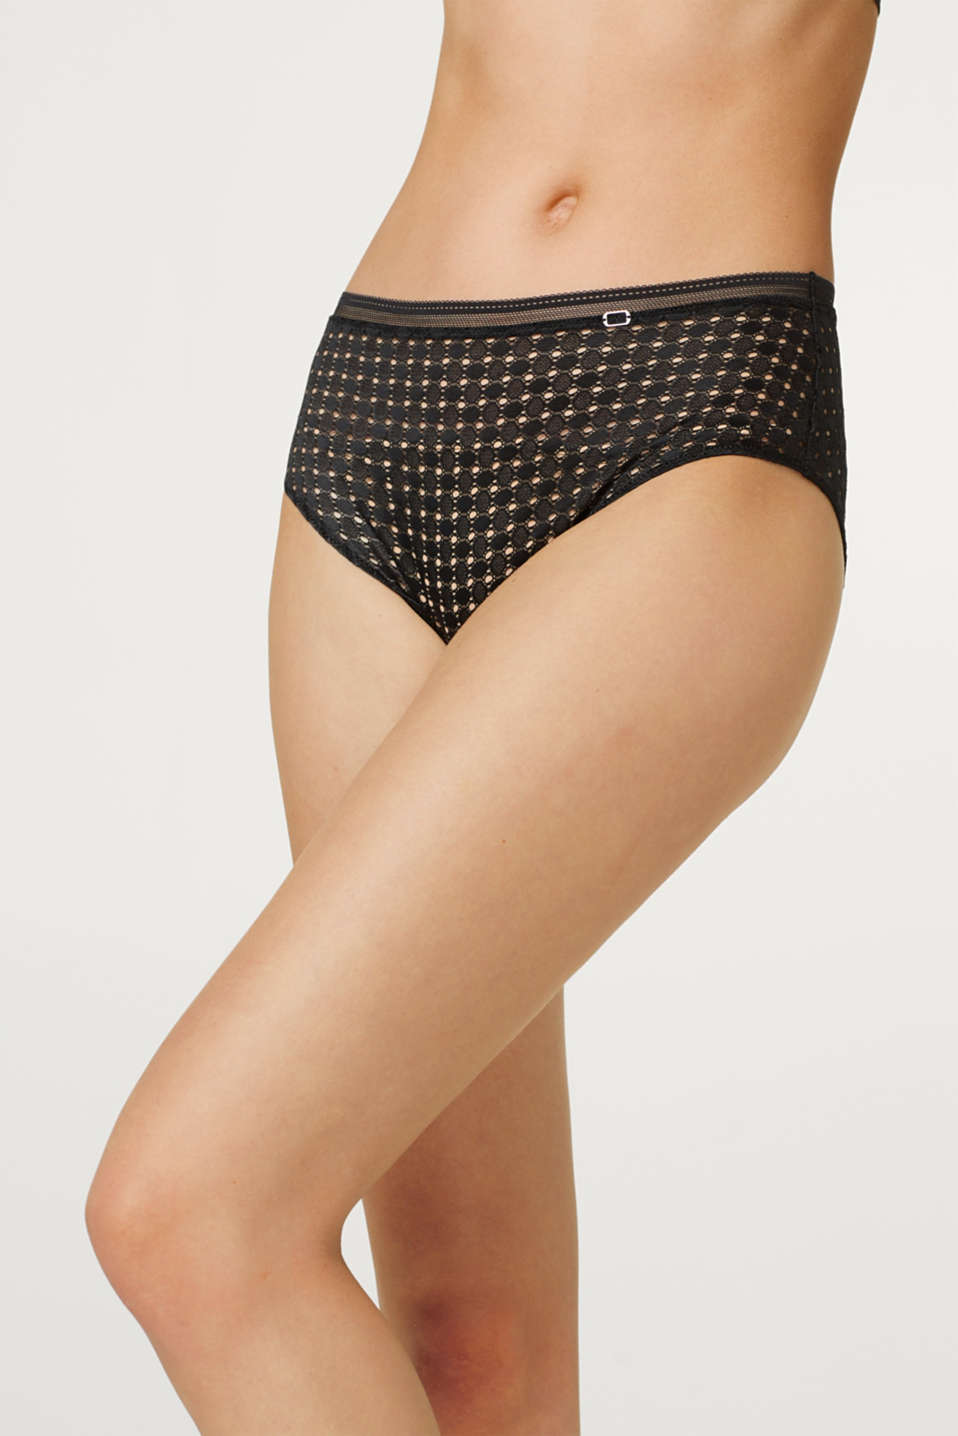 NY EDITION broderie anglaise briefs